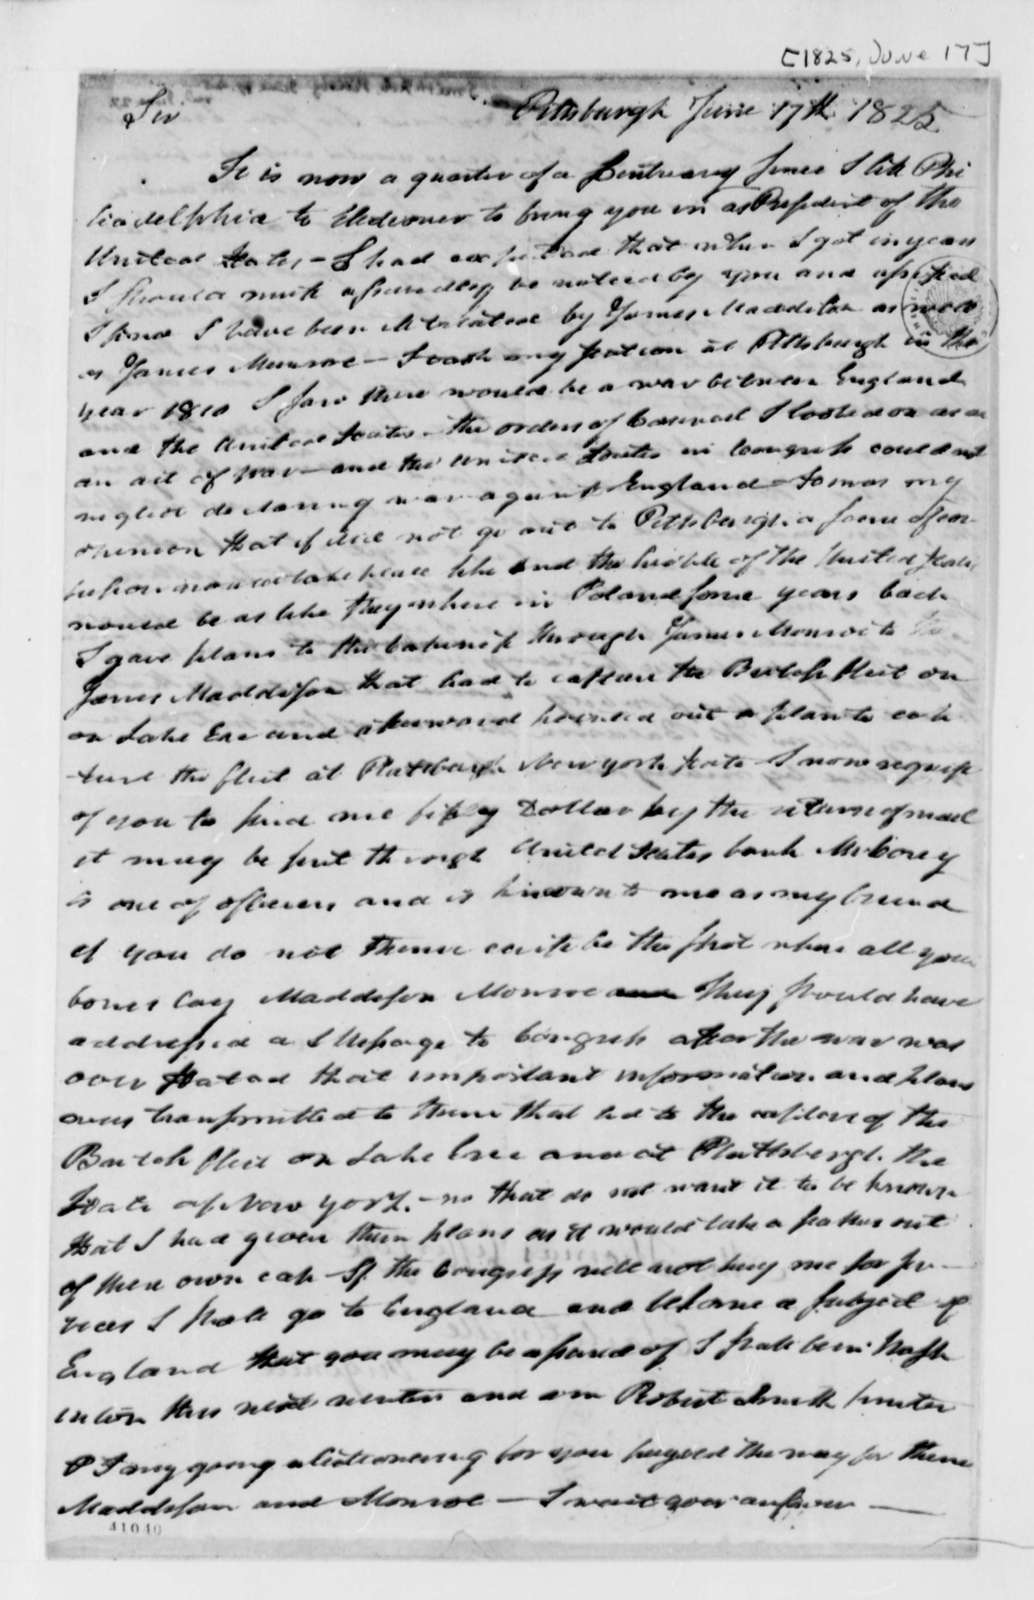 Robert Smith to Thomas Jefferson, June 17, 1825